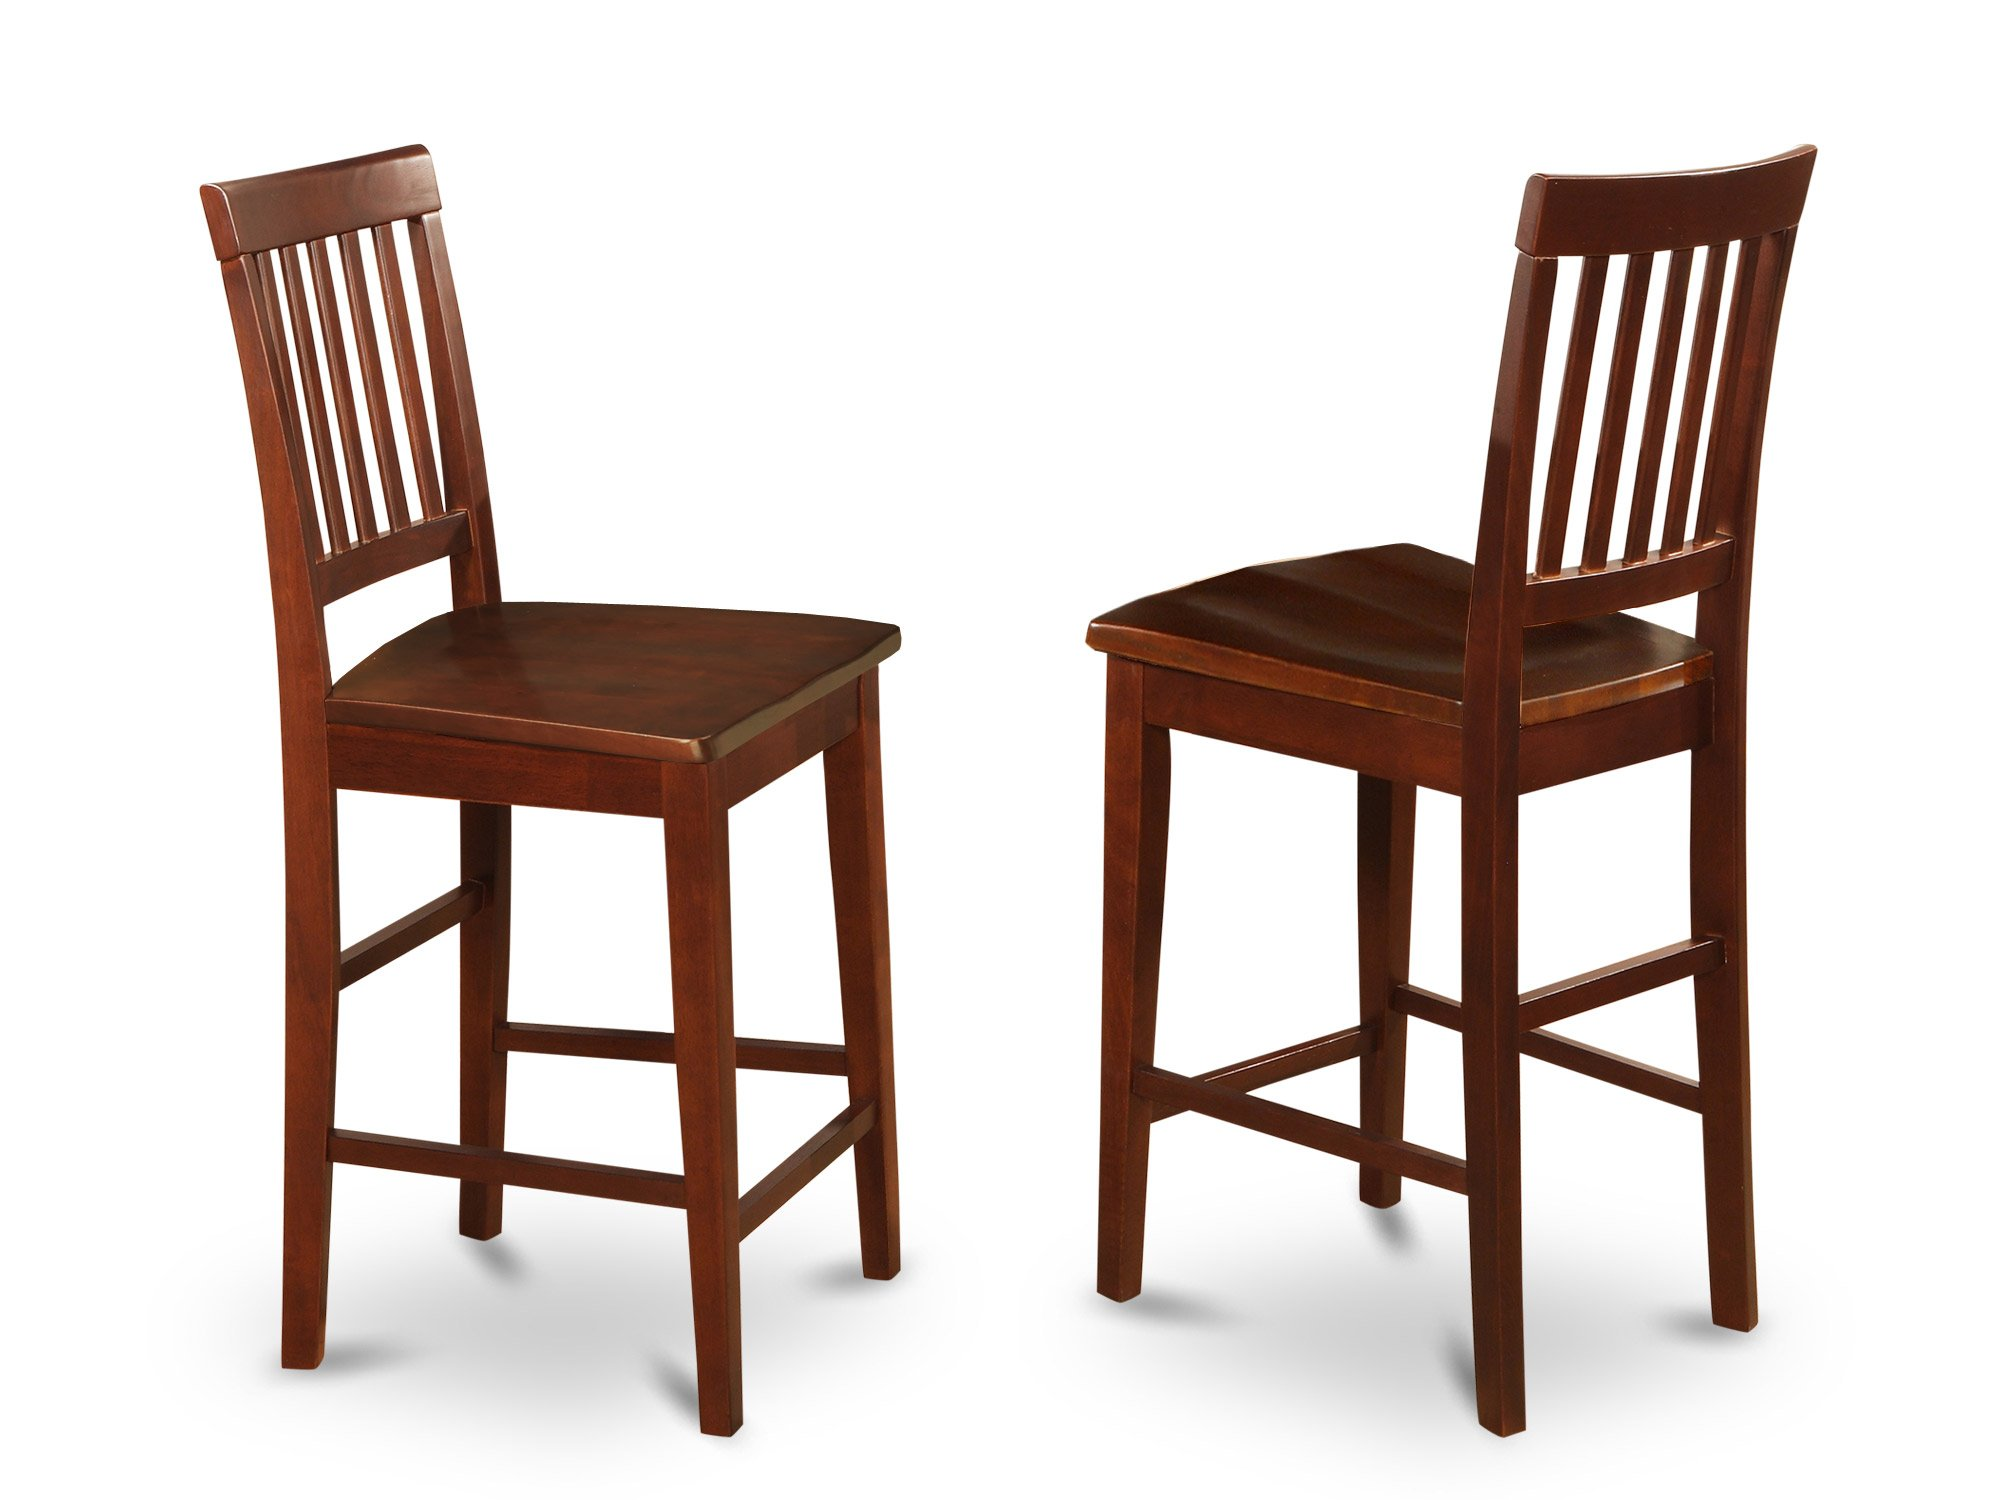 East West Furniture VNS-MAH-W Counter Stool Set with Wood Seat, Mahogany Finish, Set of 2